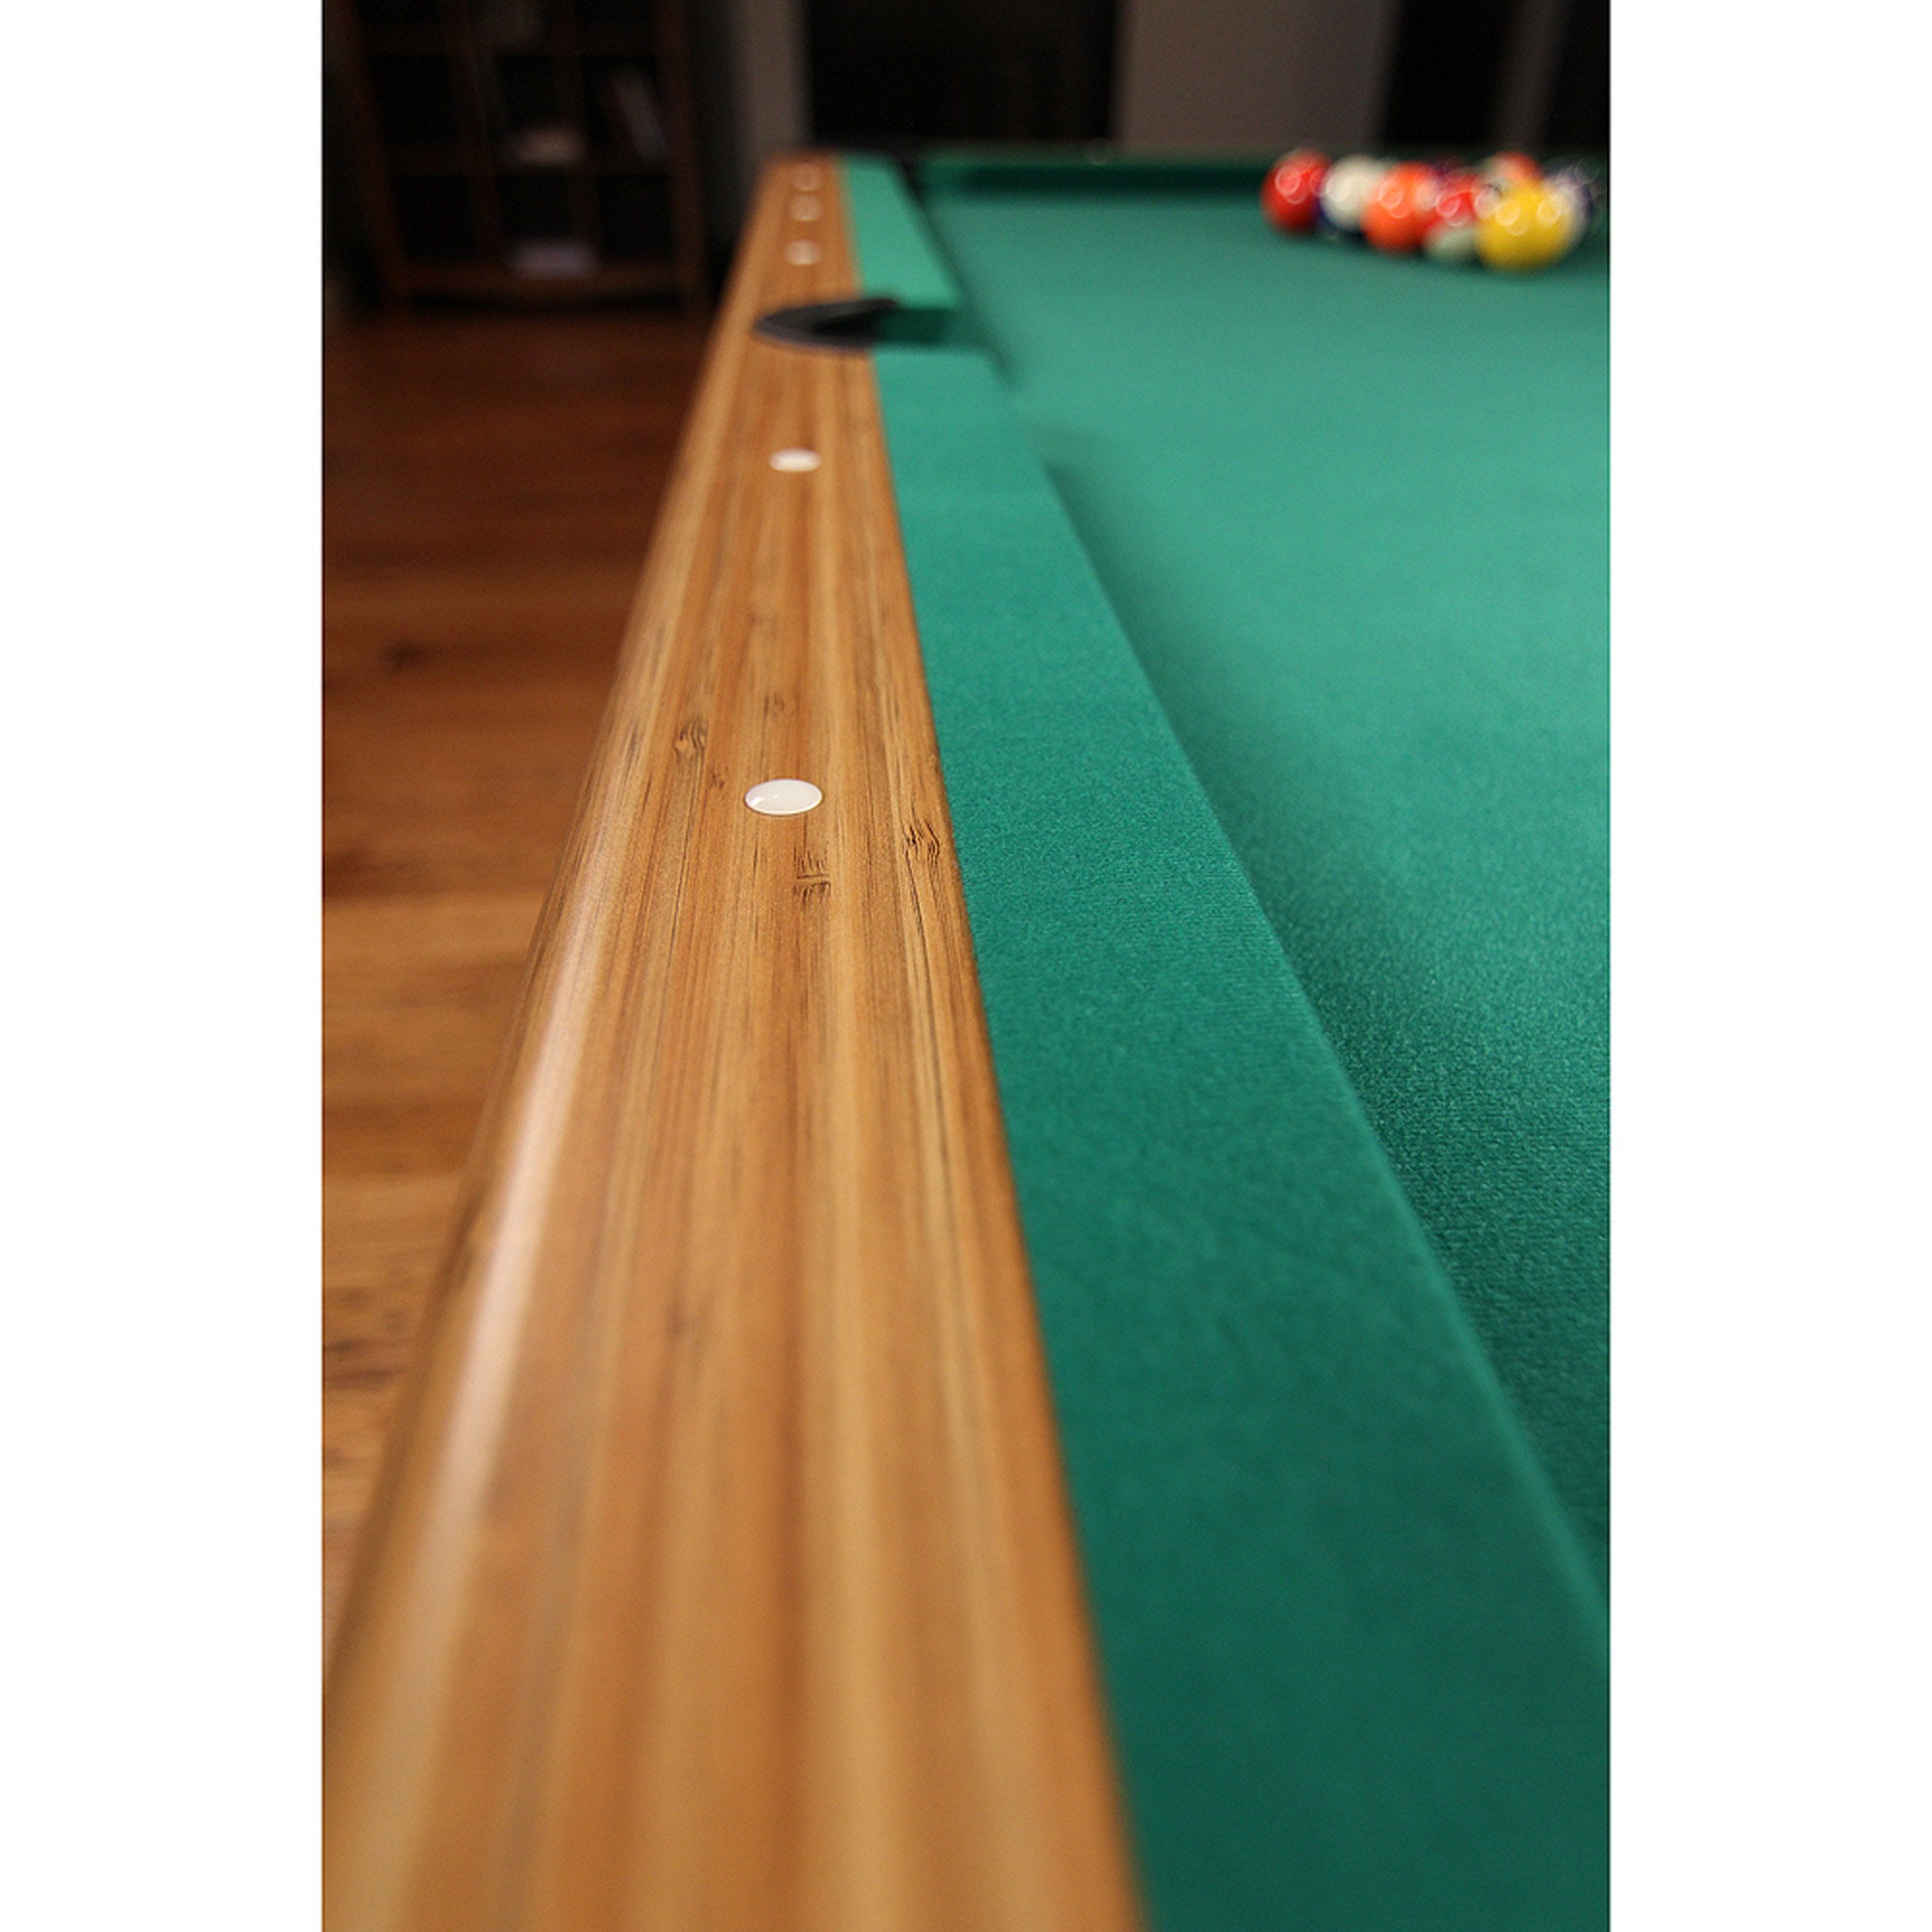 6 Foot Slate Pool Table | Mizerak Pool Table | 6 Foot Pool Tables for Sale